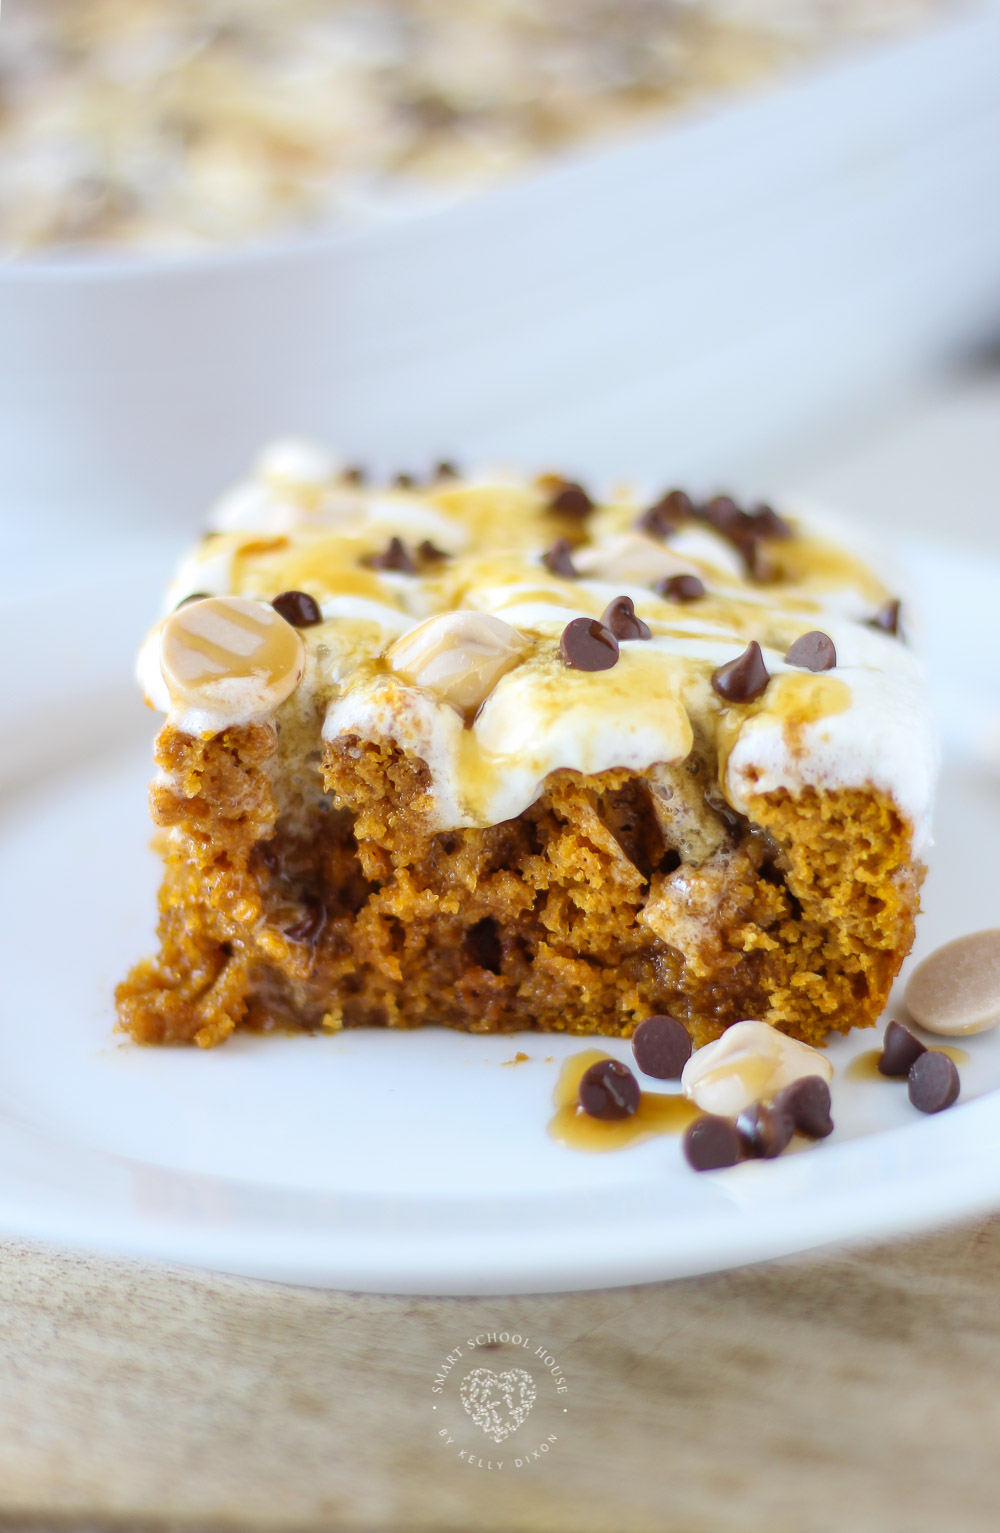 This Pumpkin Spice Poke Cake is the only poke cake recipe you will need from now until Christmas. It's soft, fluffy, and overflowing with melted cream cheese frosting and caramel.